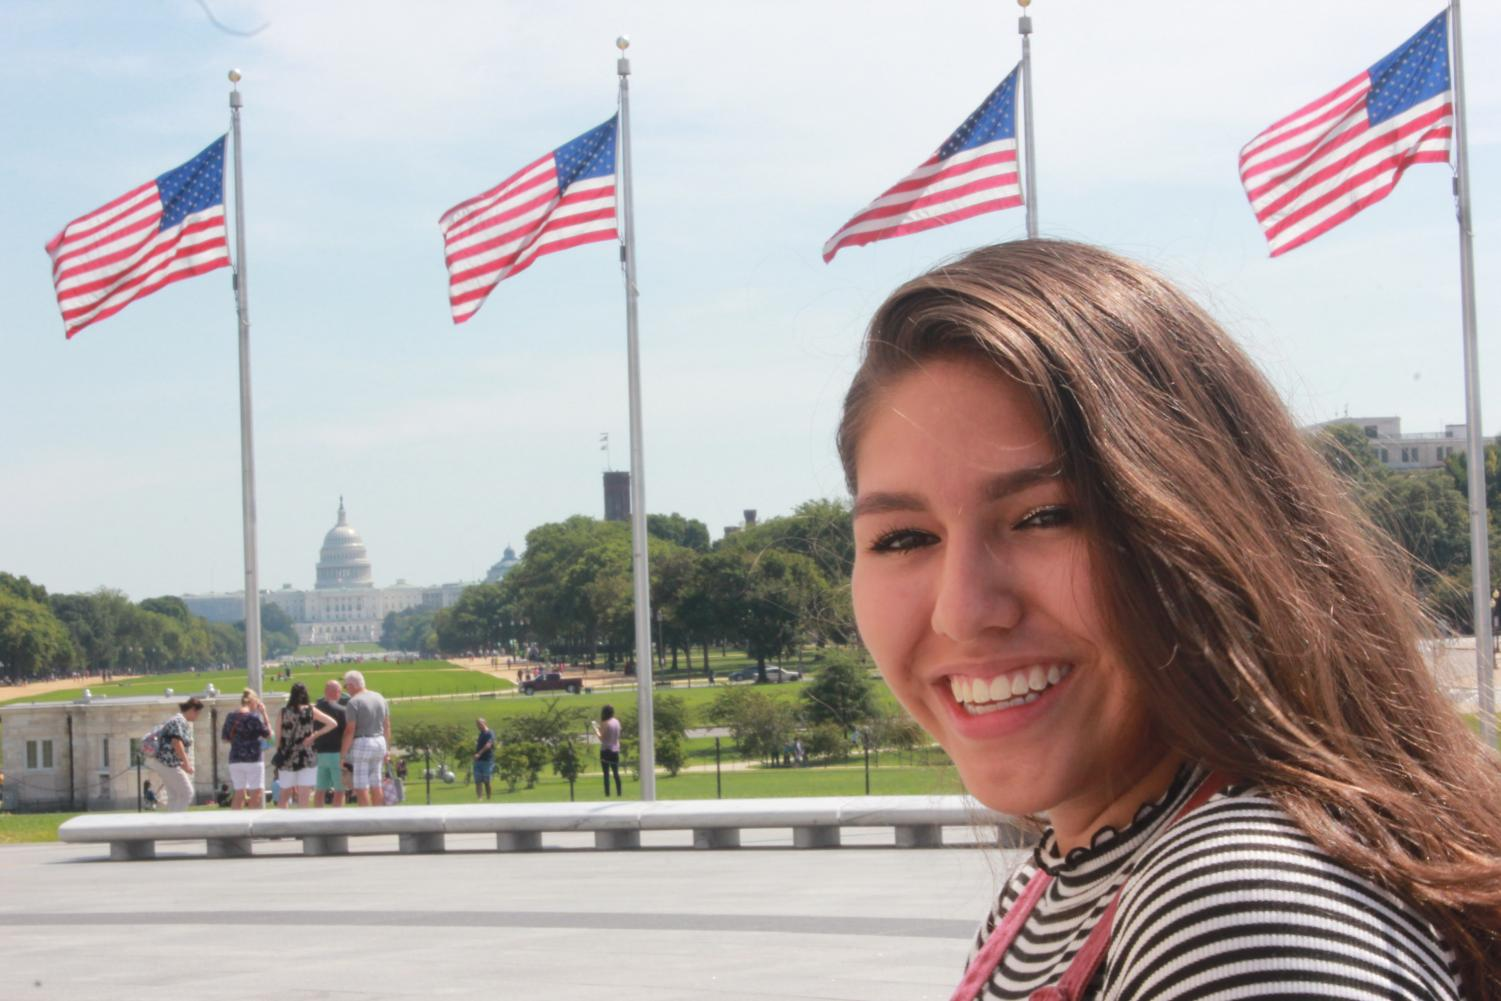 Senior Nicolle Uria will be U.S. Congressman Gerry Connolly's guest to the President's State of the Union on Jan. 31. She will be representing herself and the reported 800,000 DACA recepients.